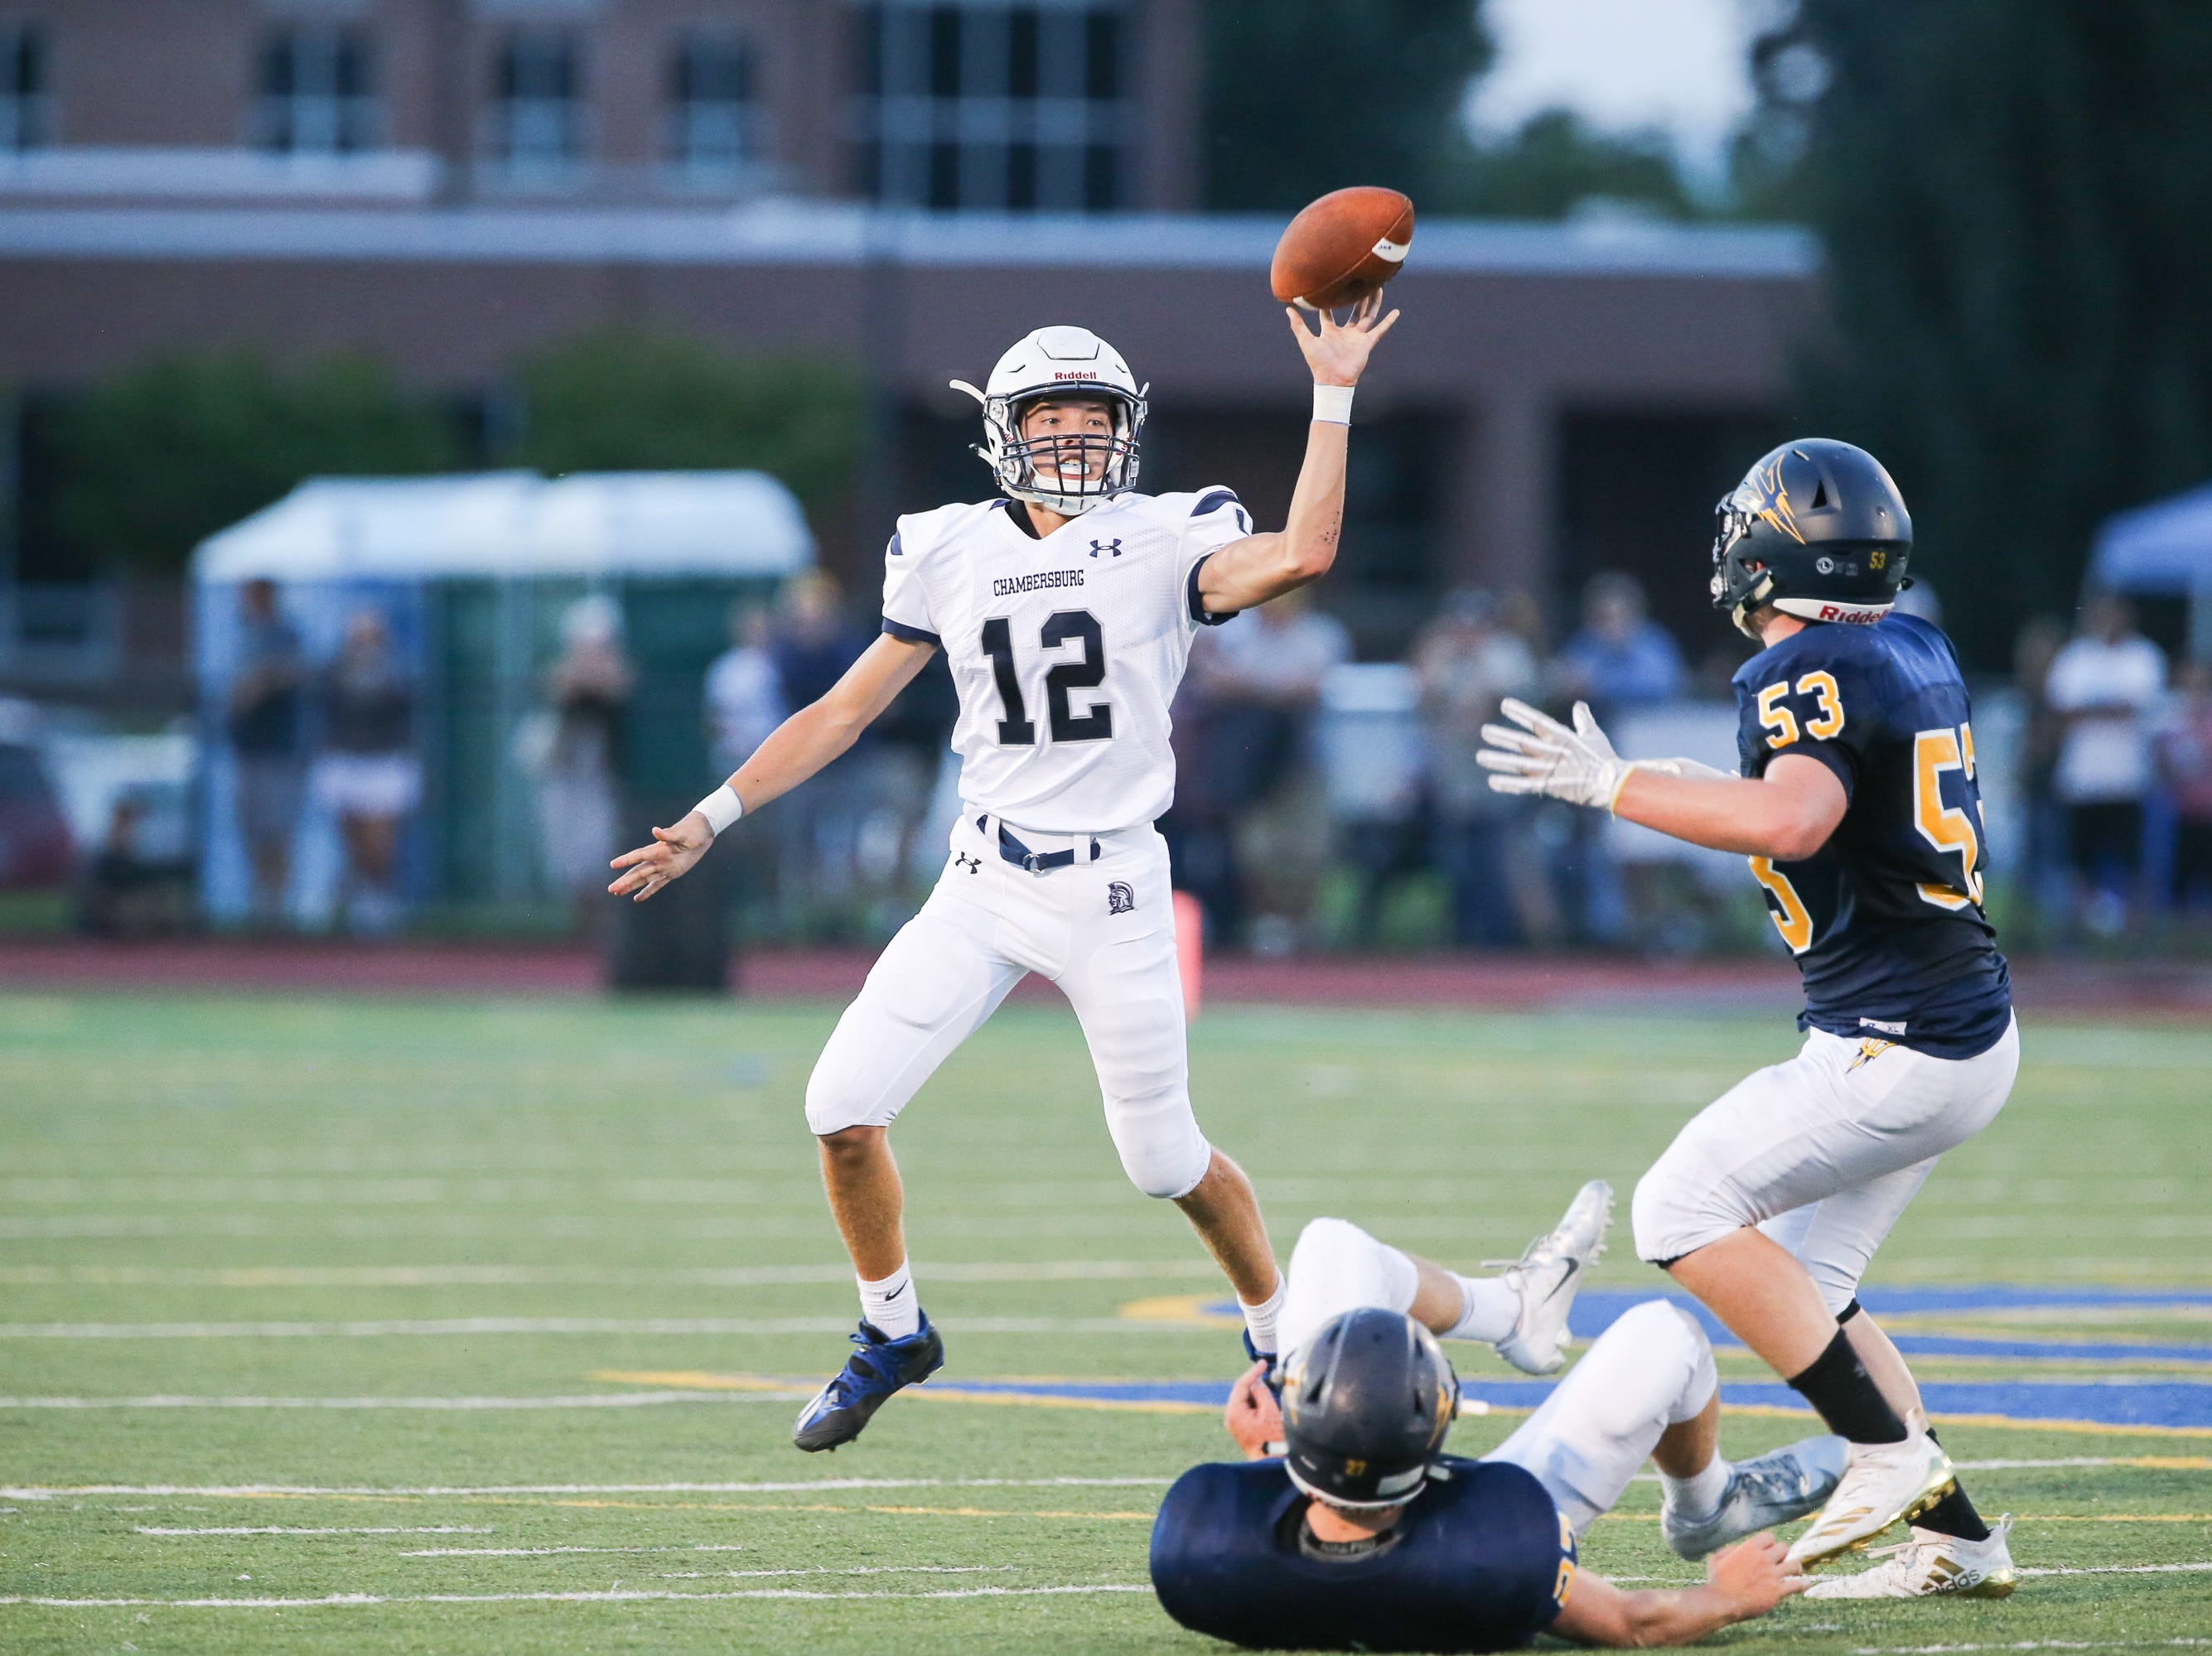 Chambersburg quarterback Brgady Stumbaugh (12) throws the football during the season opener versus Greencastle-Antrim on Friday, Aug. 24, 2018, in Greencastle. Chambersburg won, 48-13.